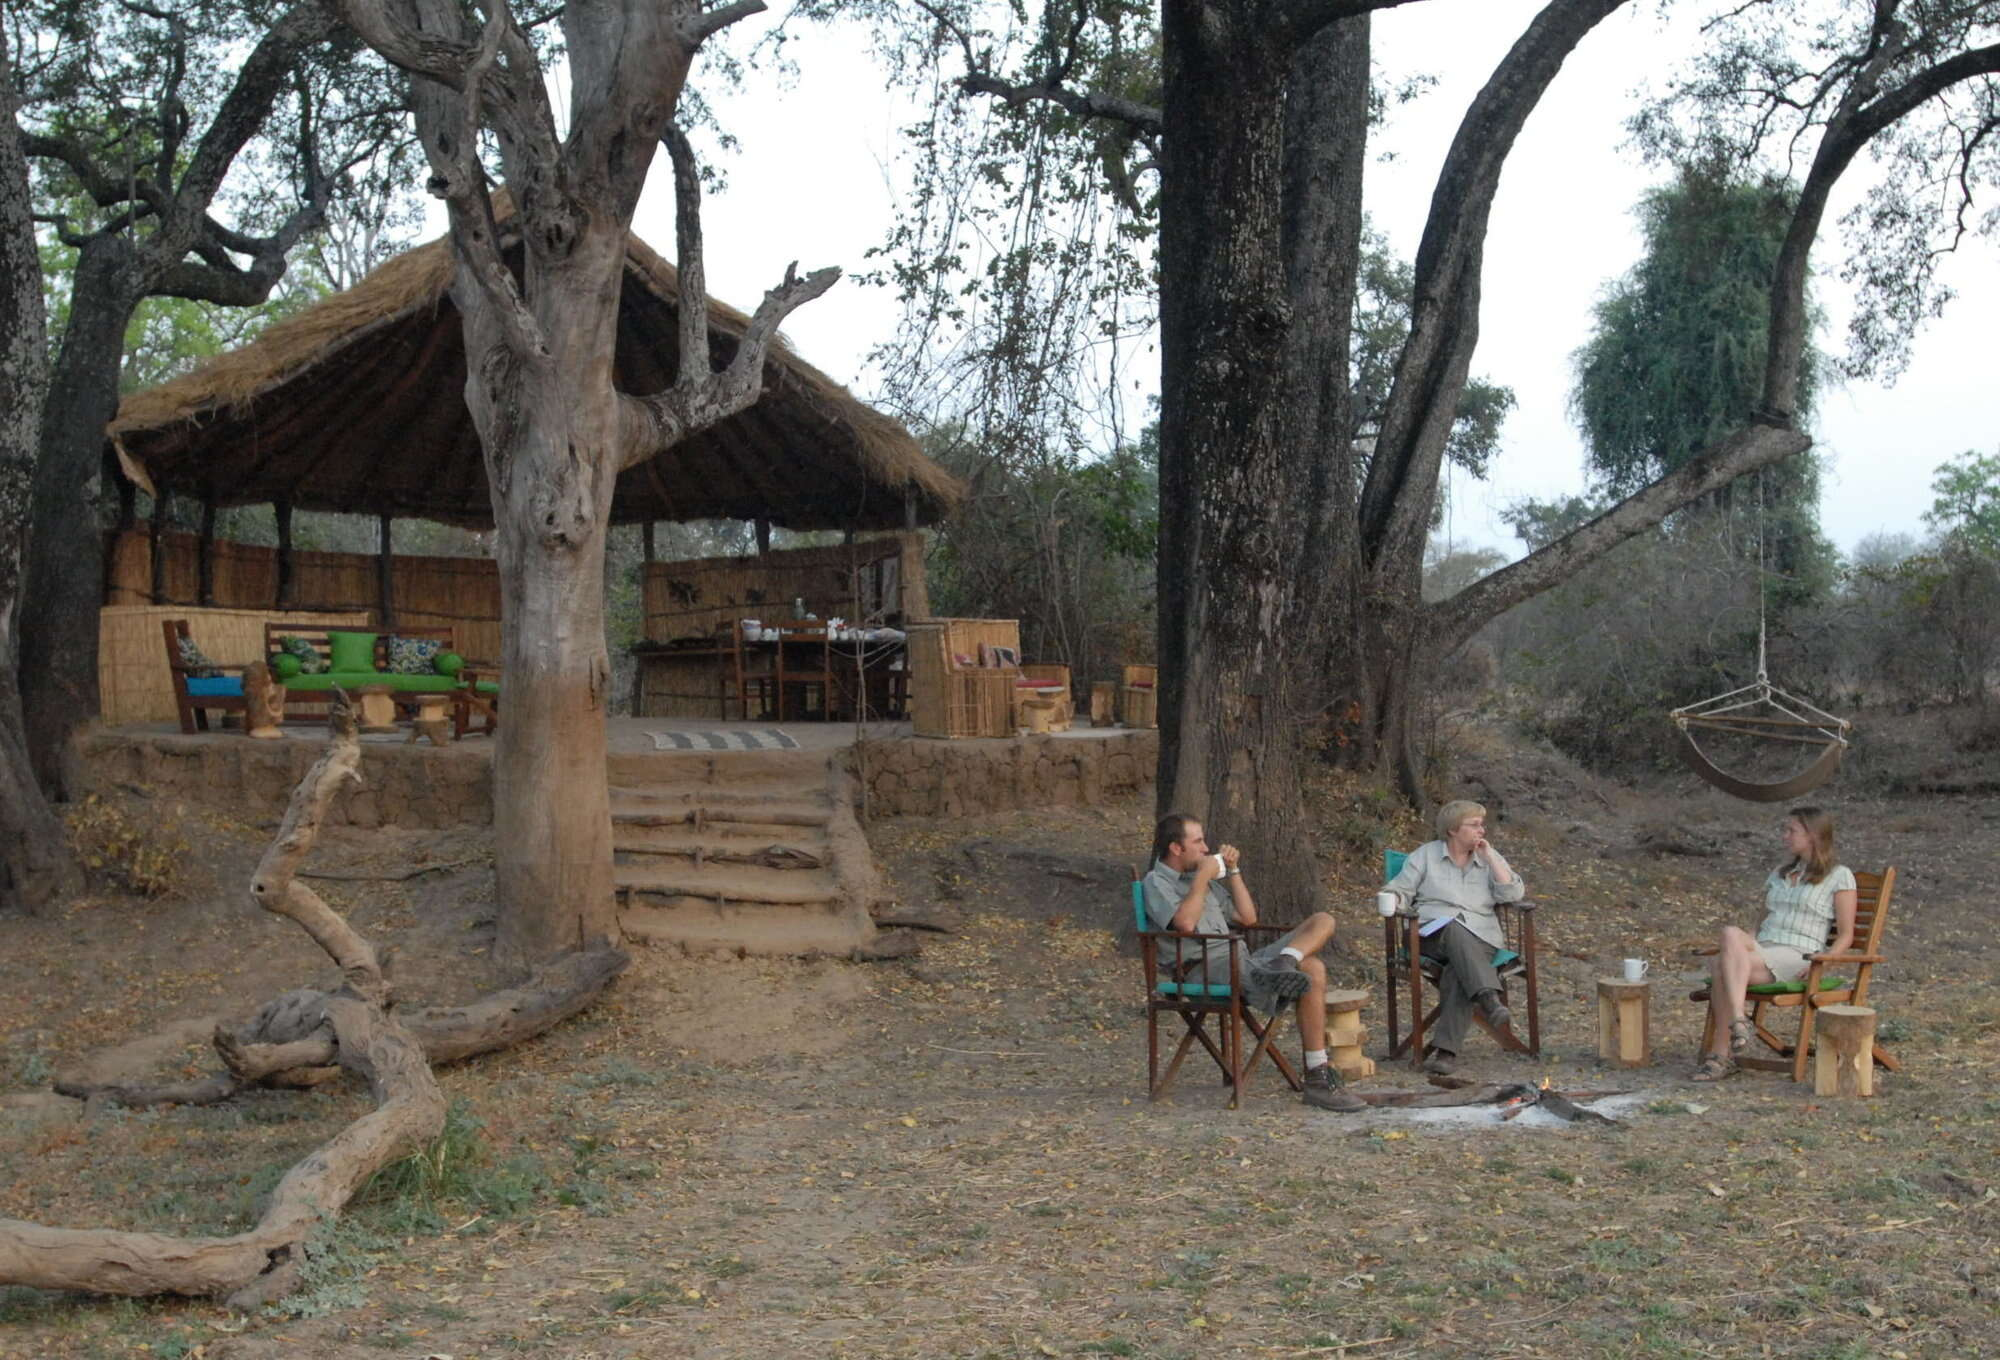 Zambia safari staying at Tafika, Chikoko, Crocodile Camps in South Luangwa National Park